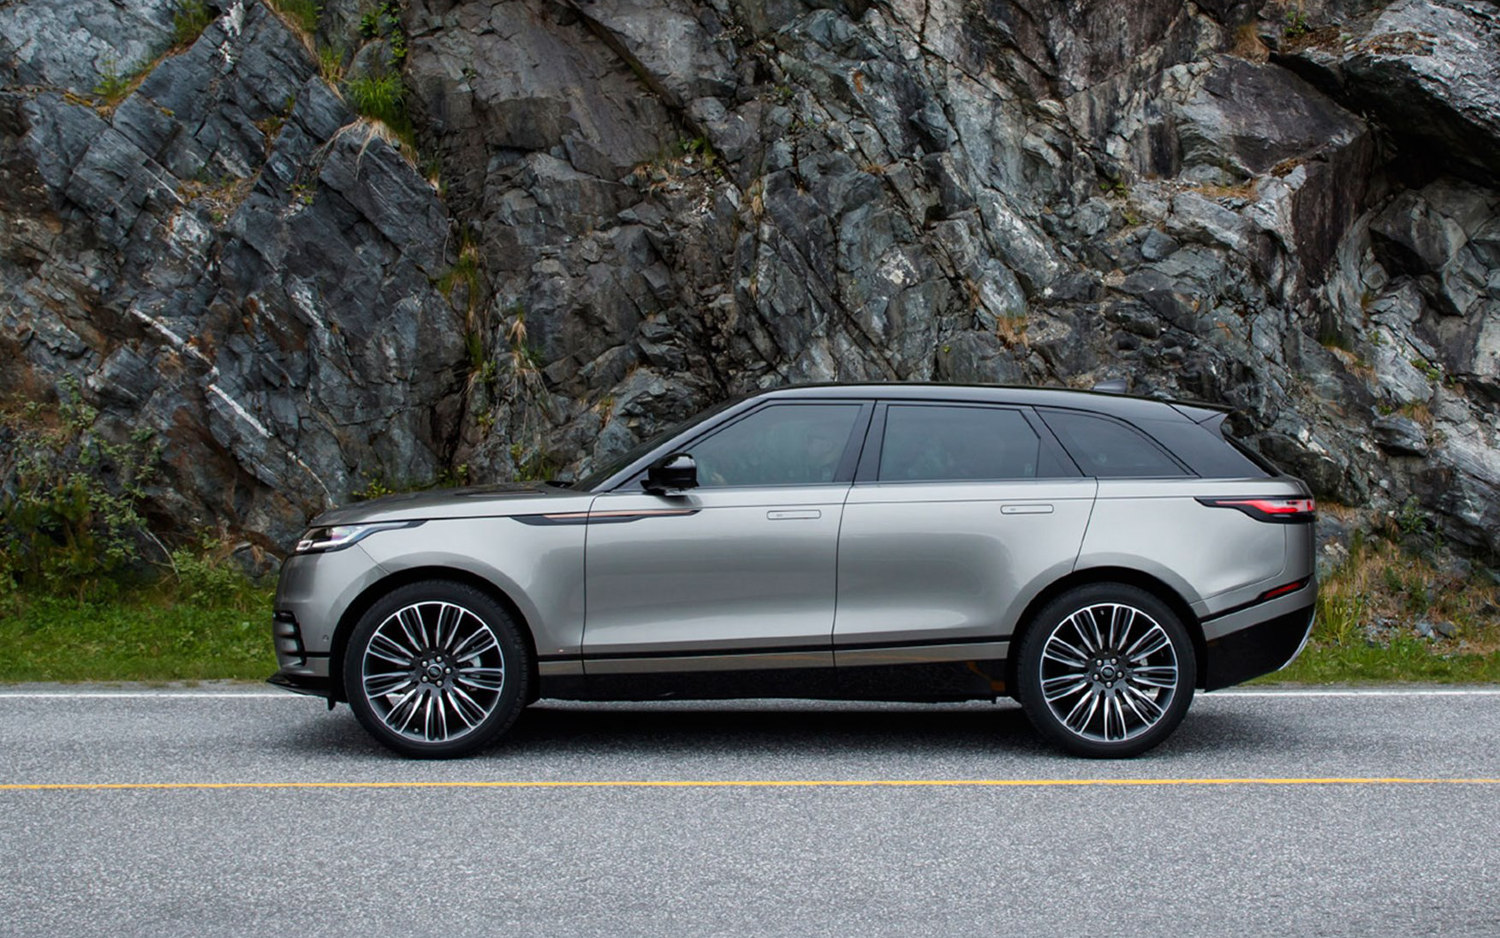 Land Rover Vs Range Rover Comparison Land Rover Range Rover Velar Se 2018 Vs